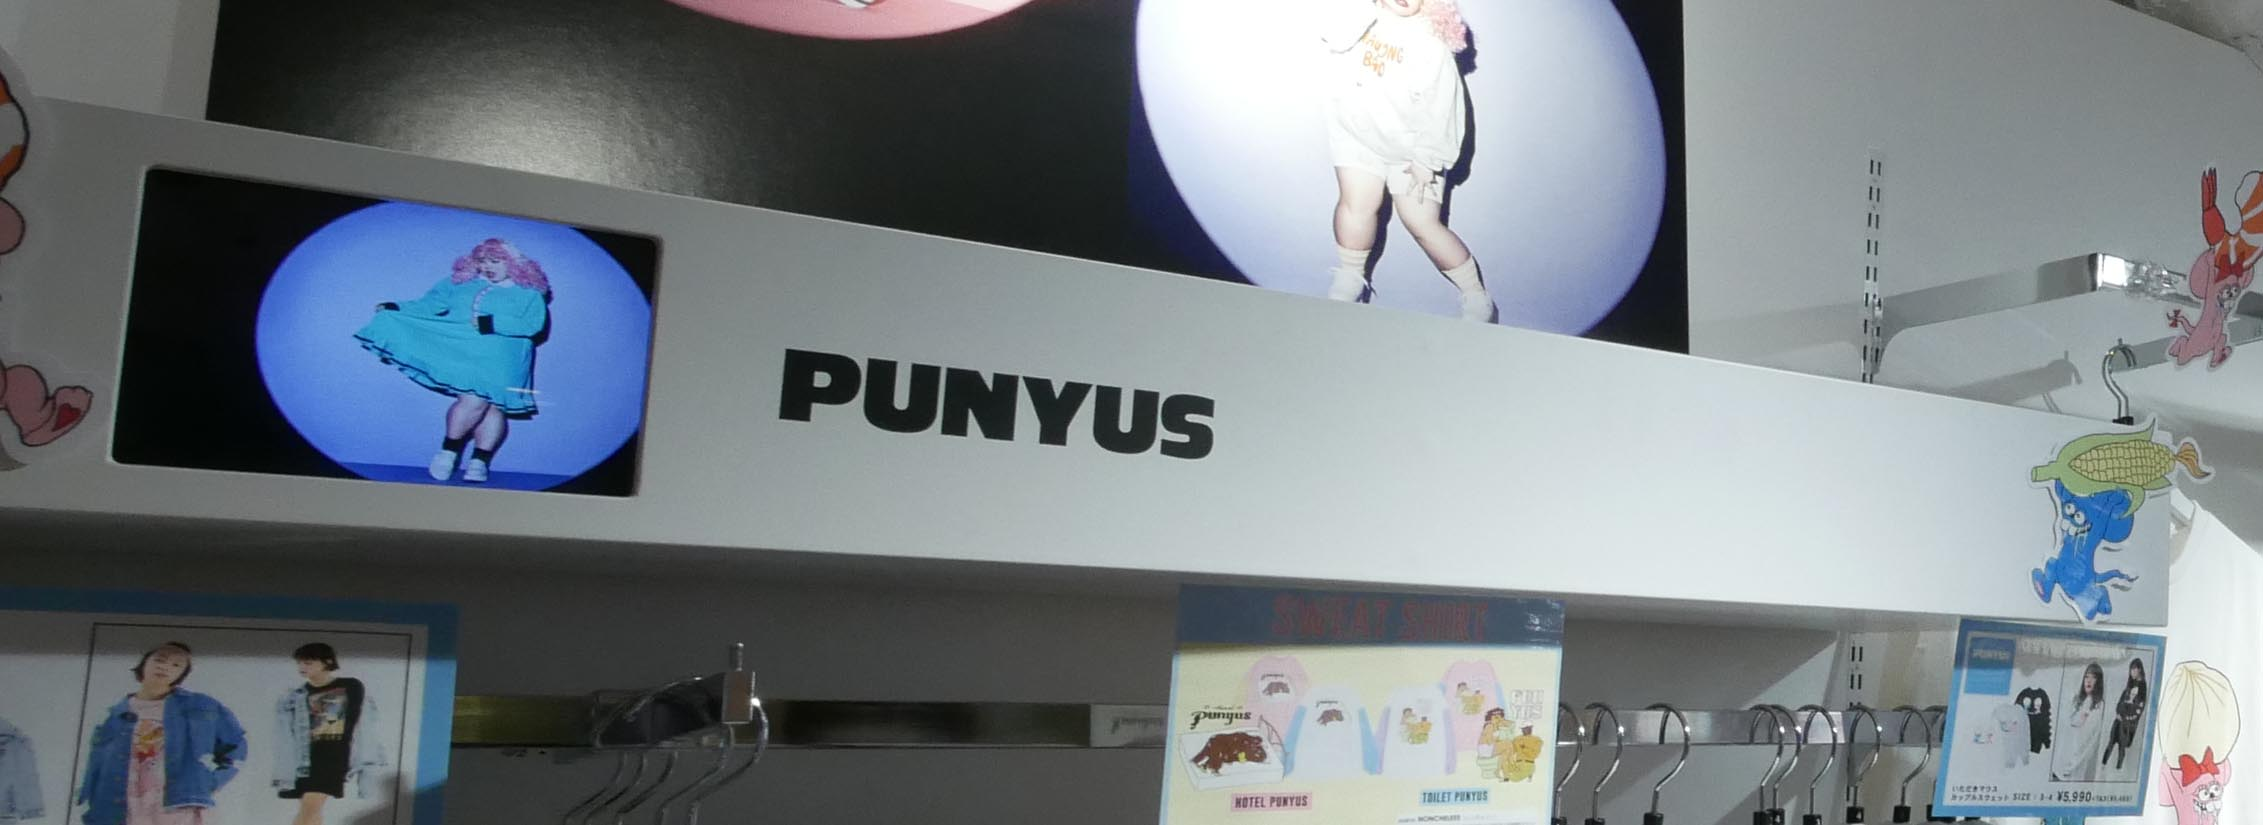 punyus-shelf